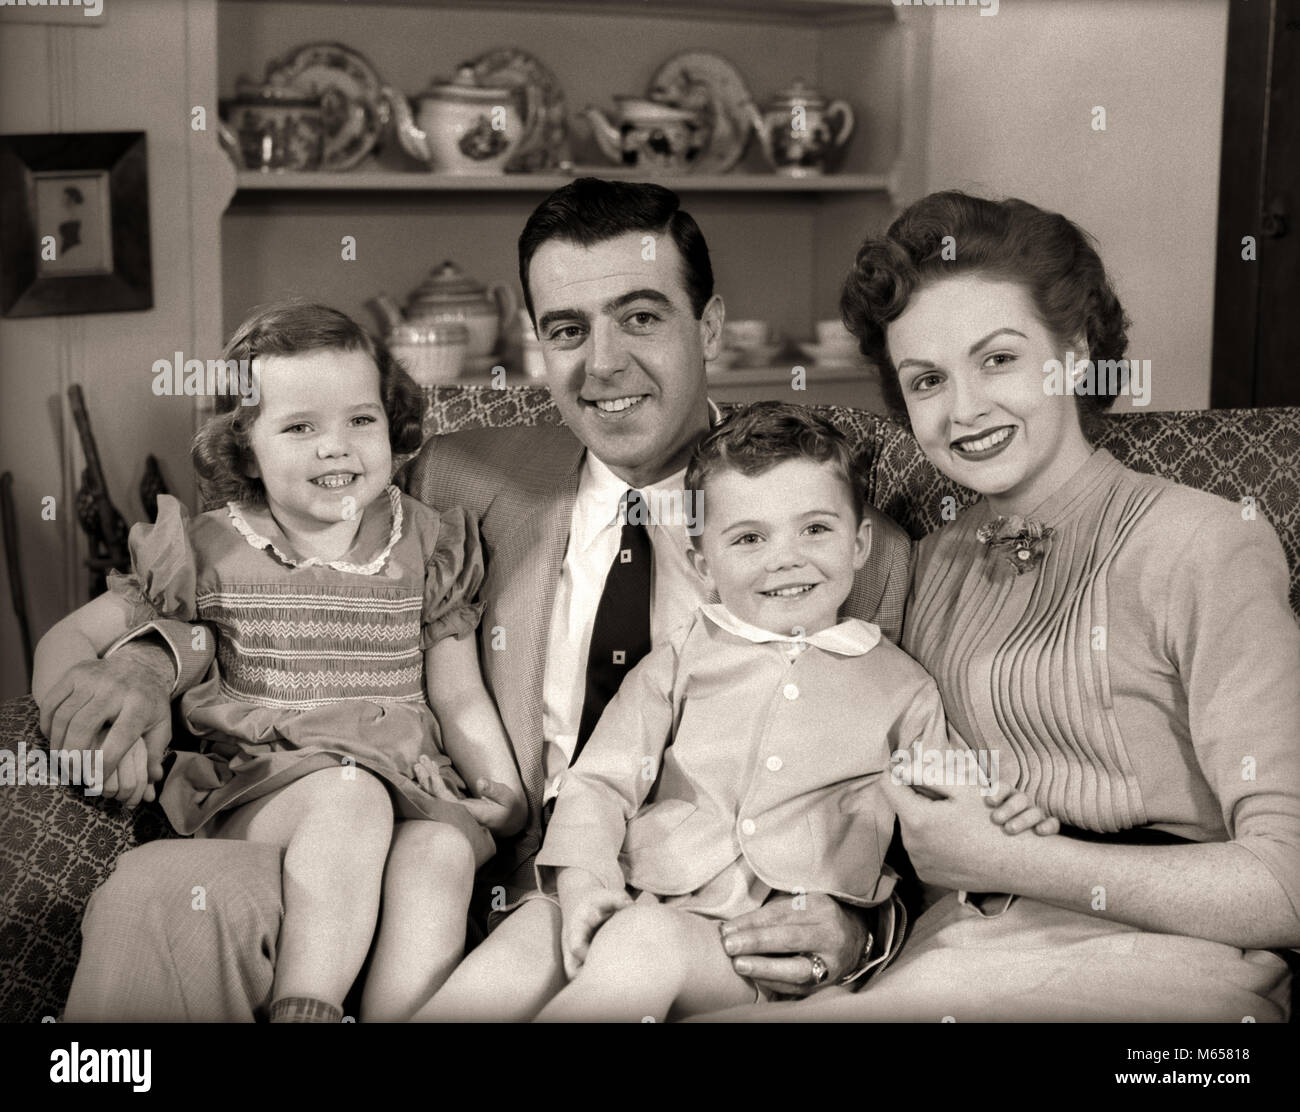 1950s FAMILY SITTING ON LIVING ROOM COUCH TOGETHER SMILING LOOKING AT CAMERA - j3908 HAR001 HARS FUTURE BROTHER - Stock Image